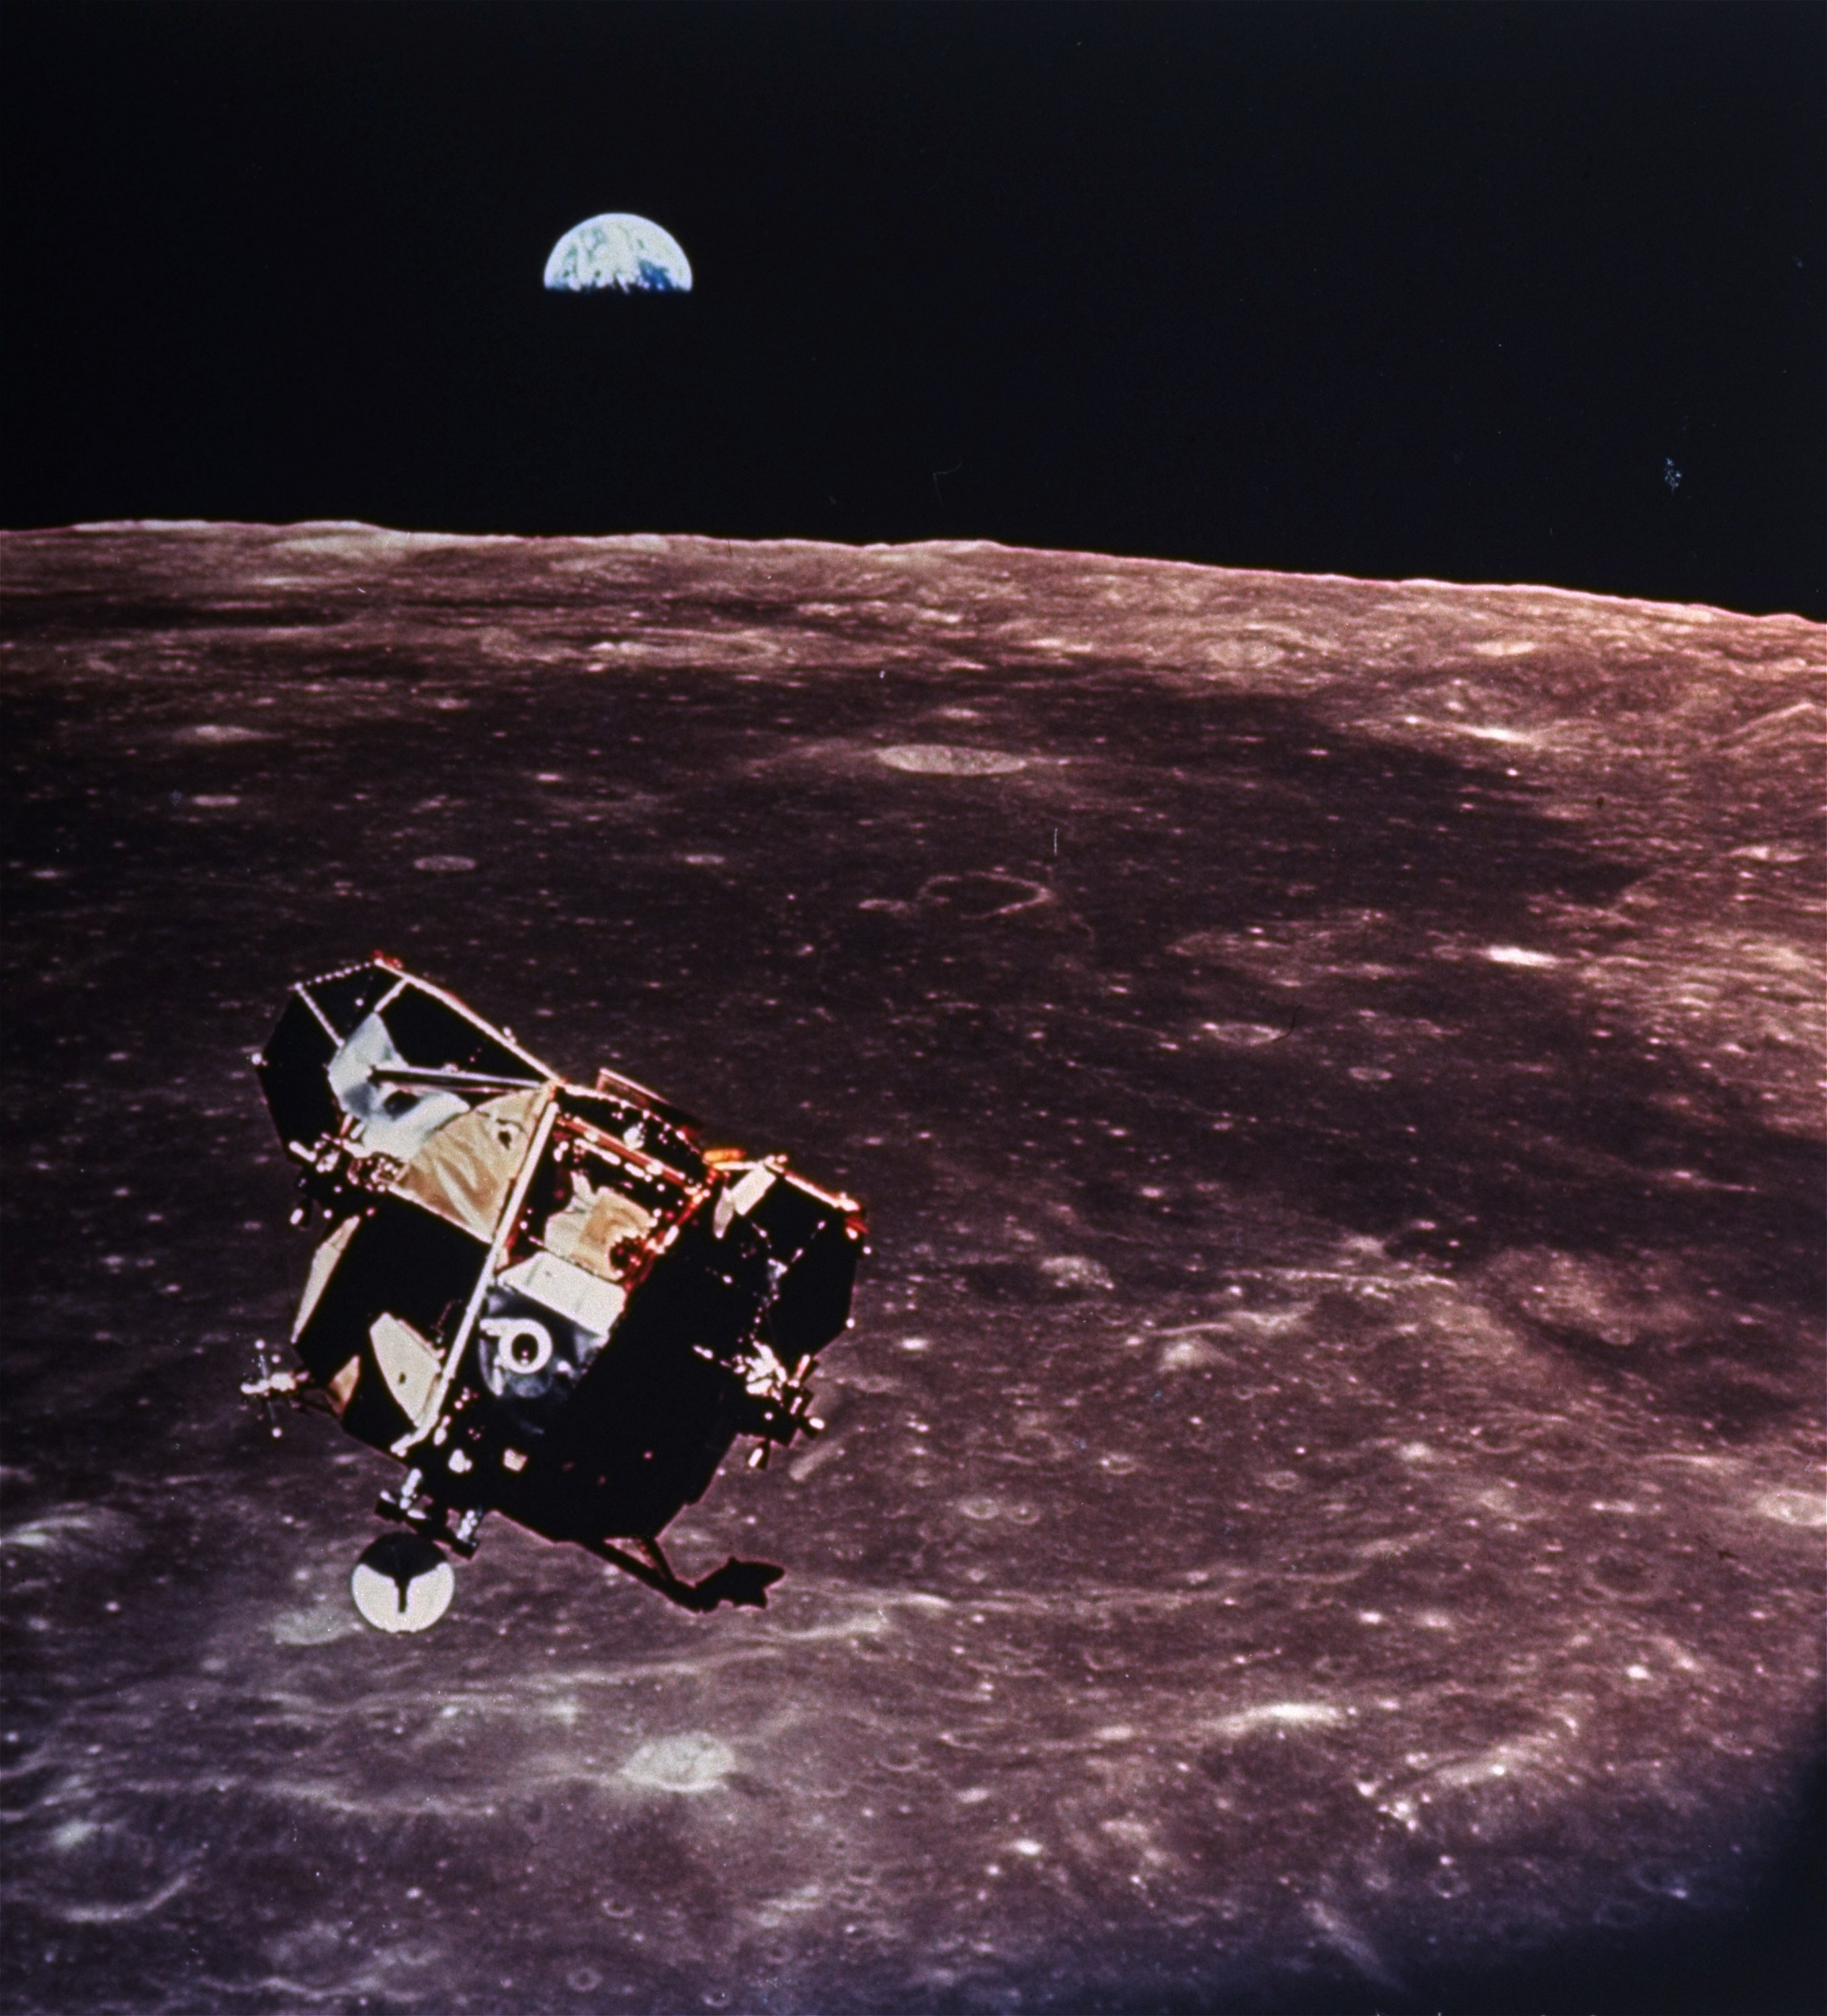 The Apollo 11 moon landing brought a fractured America